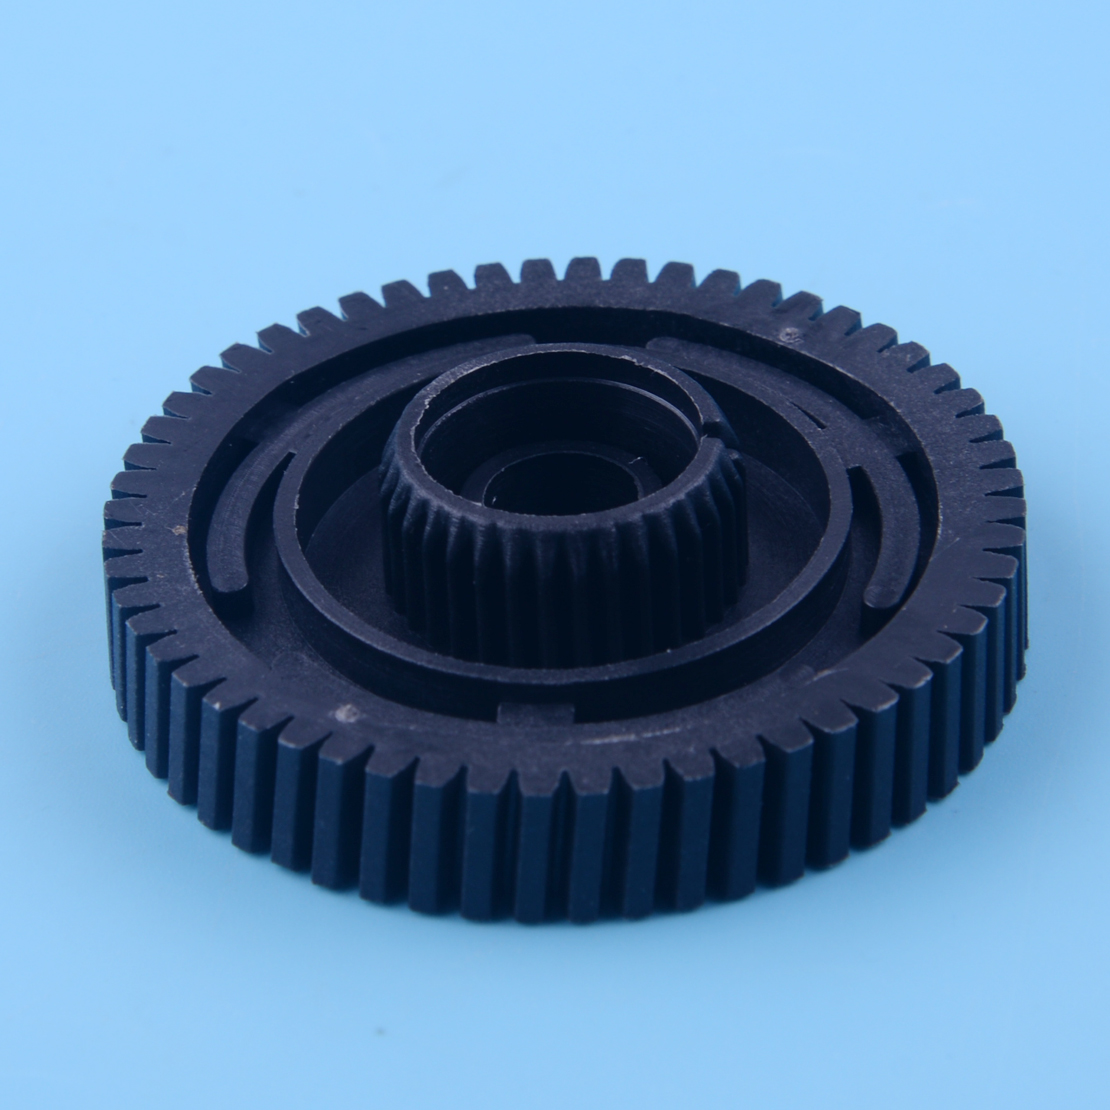 DWCX Black Plastic Transfer Case Actuator Motor Gear Box Servo Repair Accessories Fit for <font><b>BMW</b></font> E53 E70 E71 E83 X3 X5 X6 image